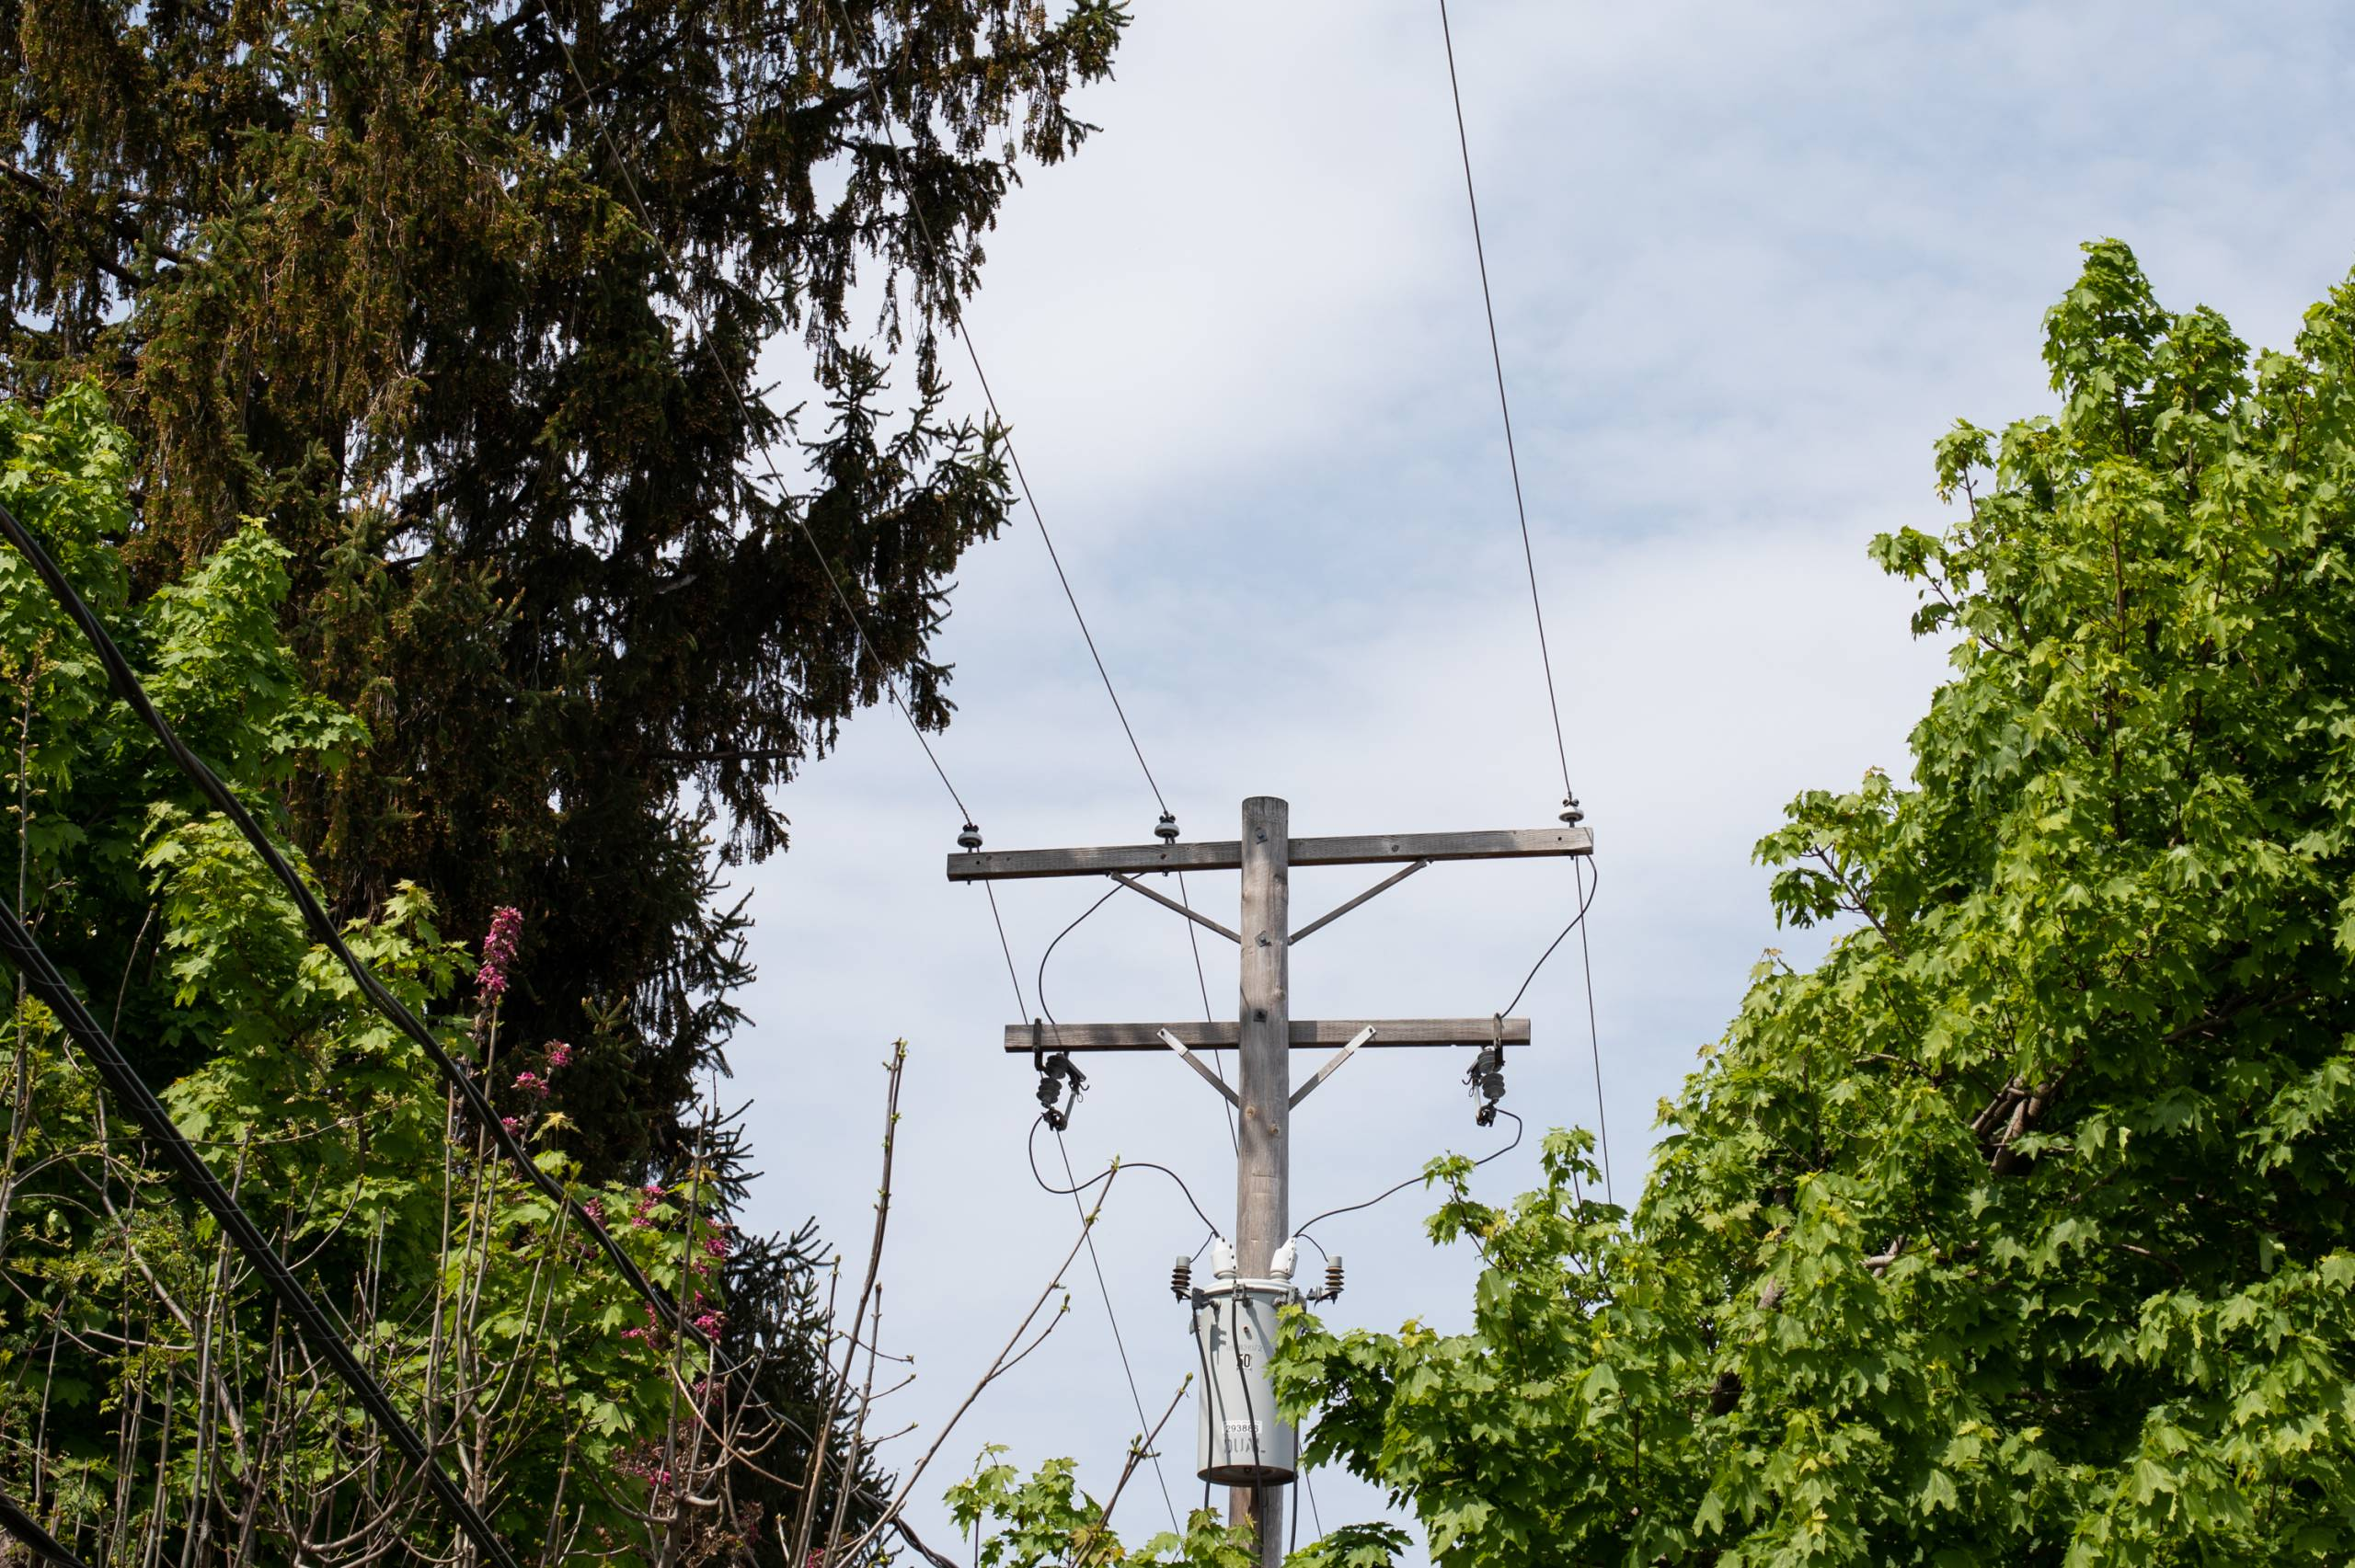 The top of a utility pole and power lines, with trees trimmed back from around them.